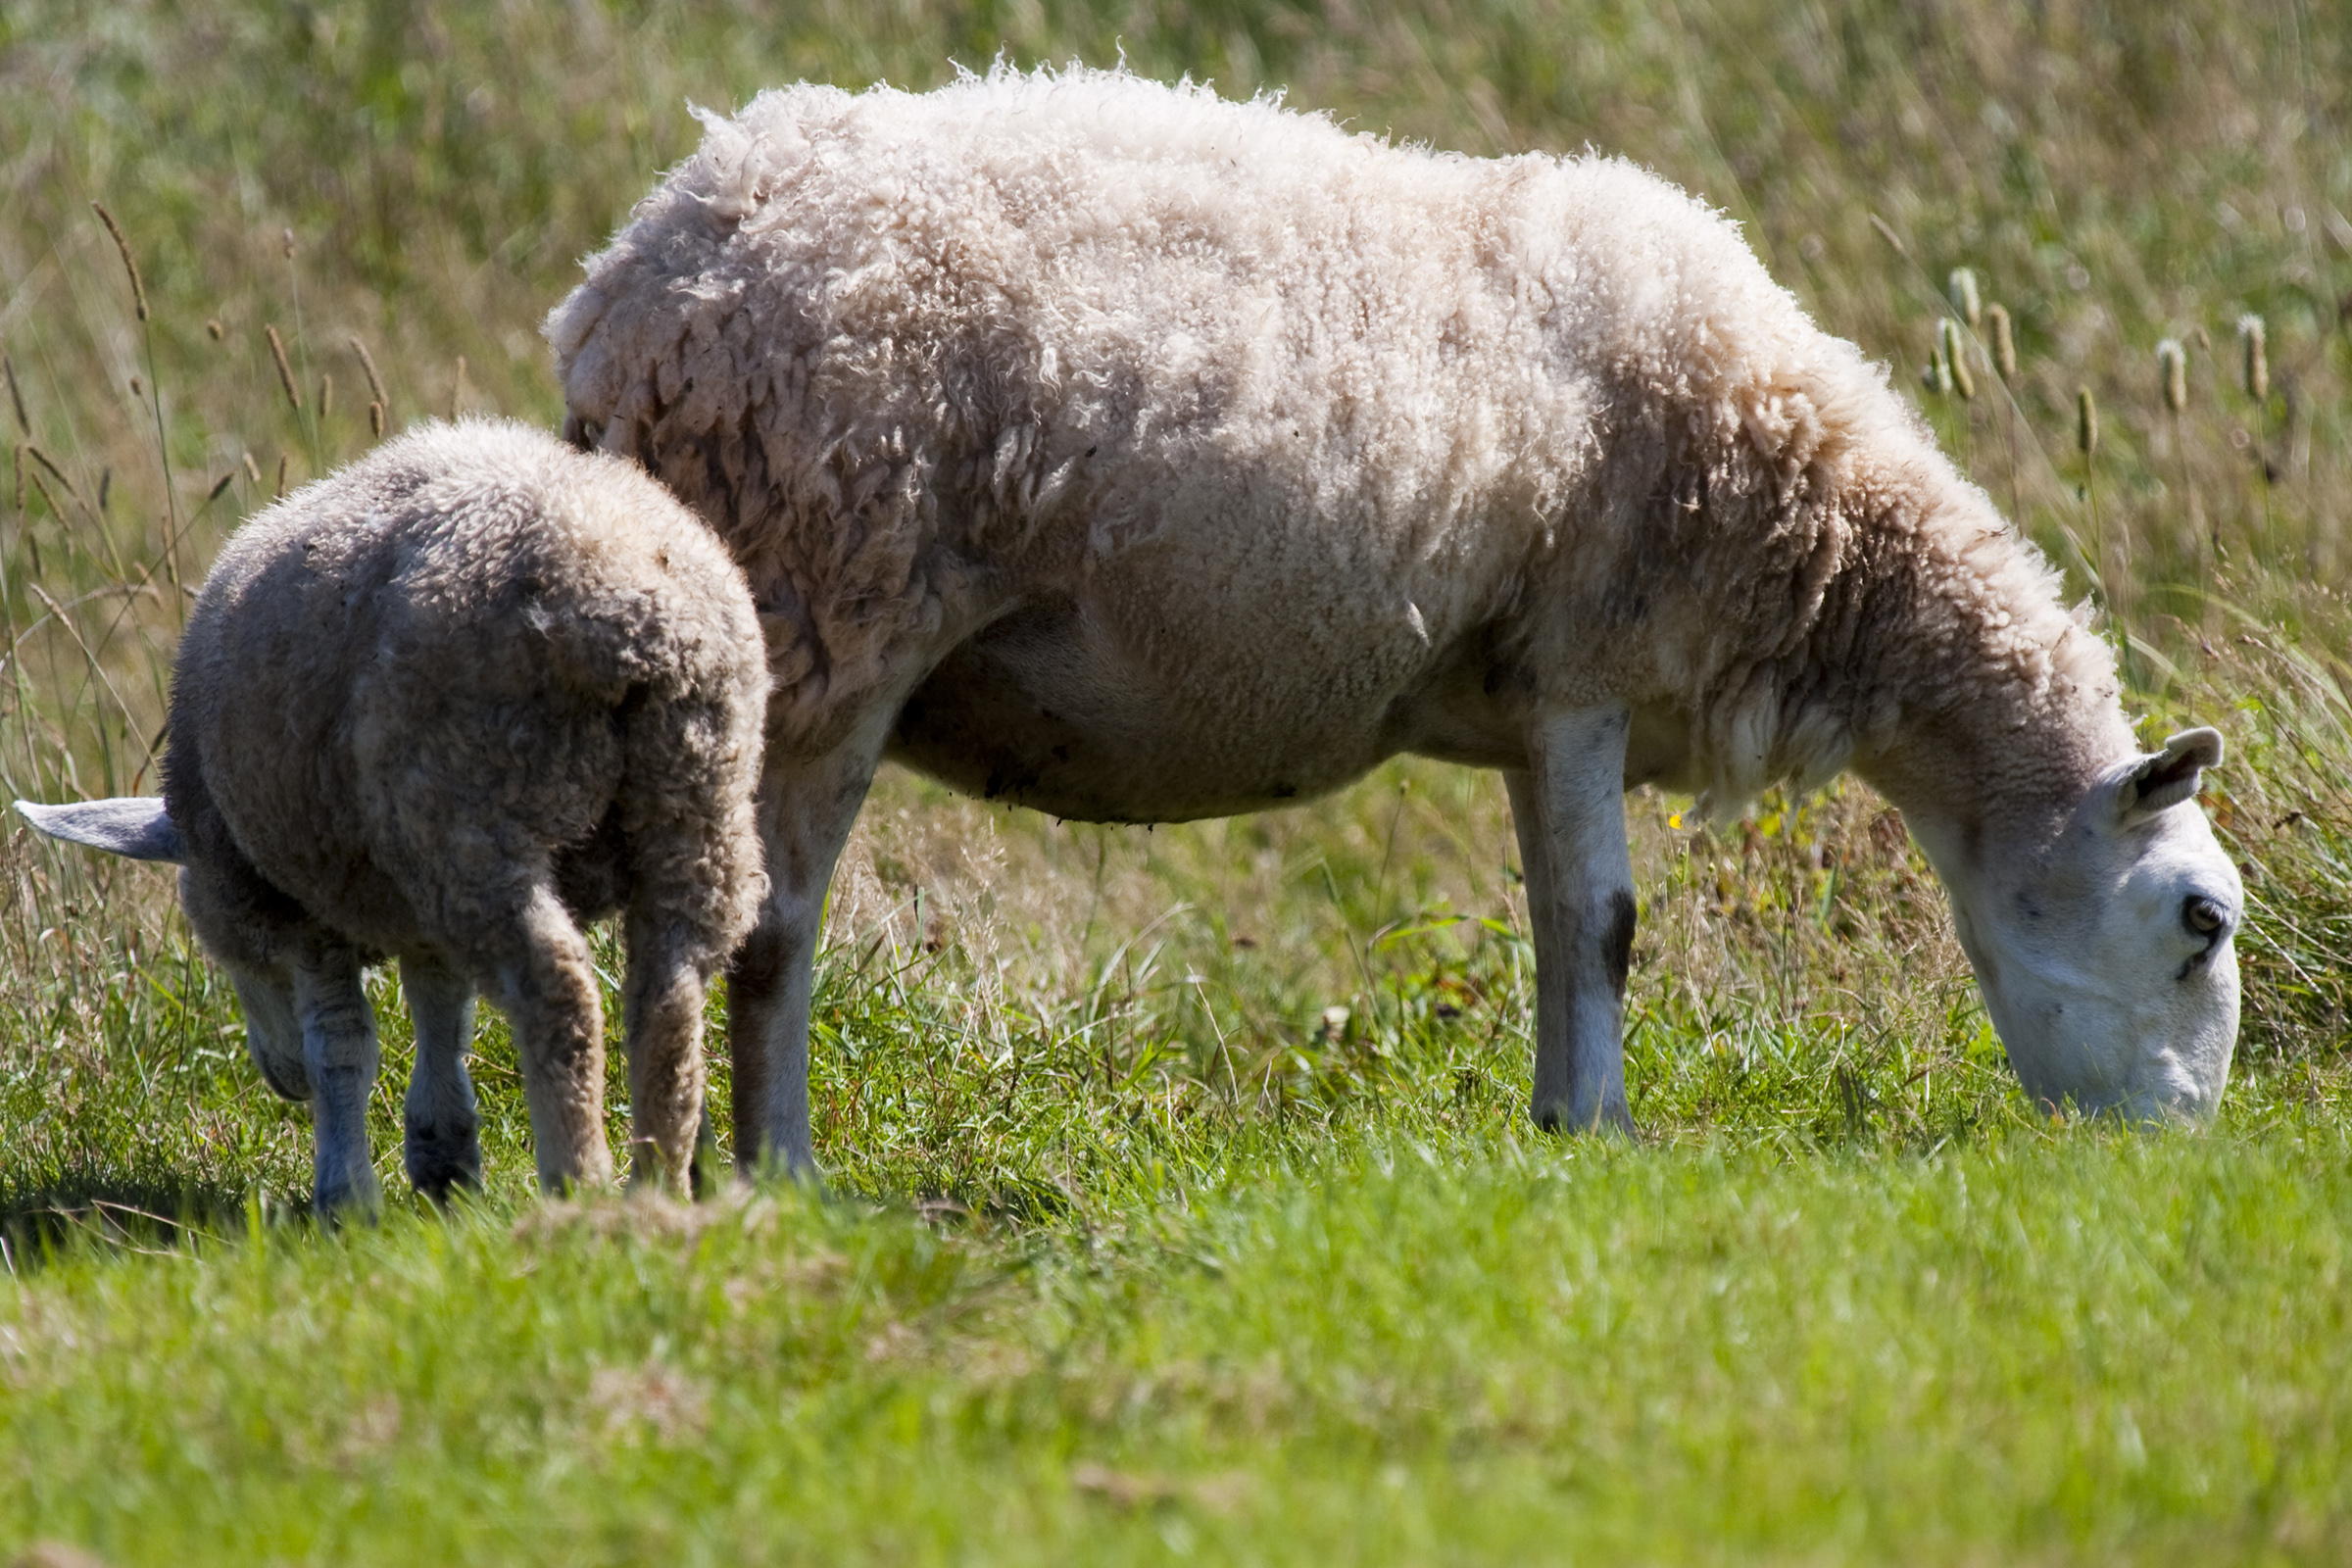 Sheep, Agriculture, Lamb, Springtime, Spring, HQ Photo